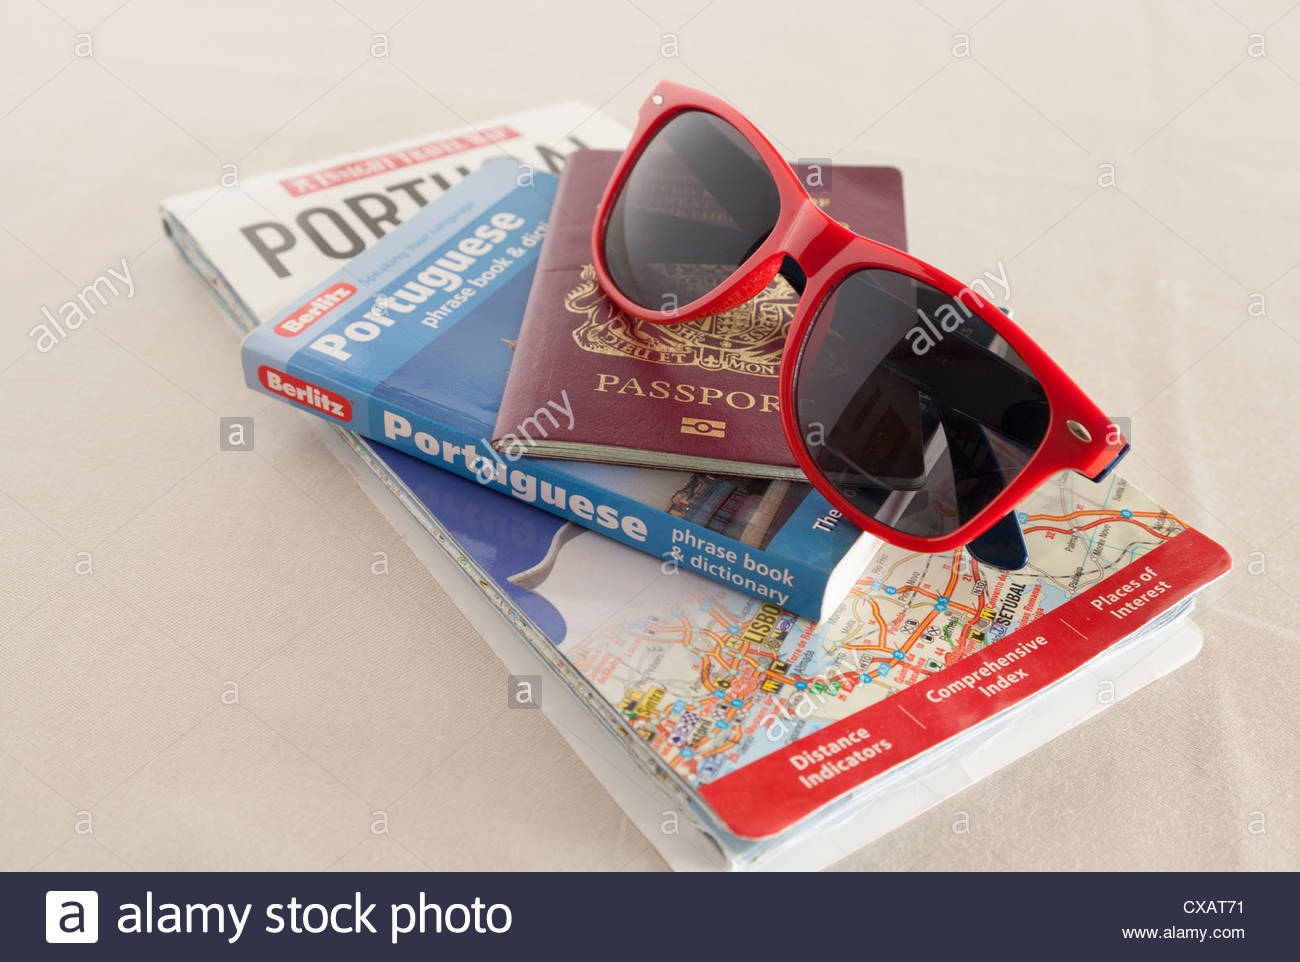 A map of Portugal with a Berlitz Portuguese phrase book and dictionary a United Kingdom Passport and a pair of Sunglasses - Stock Image